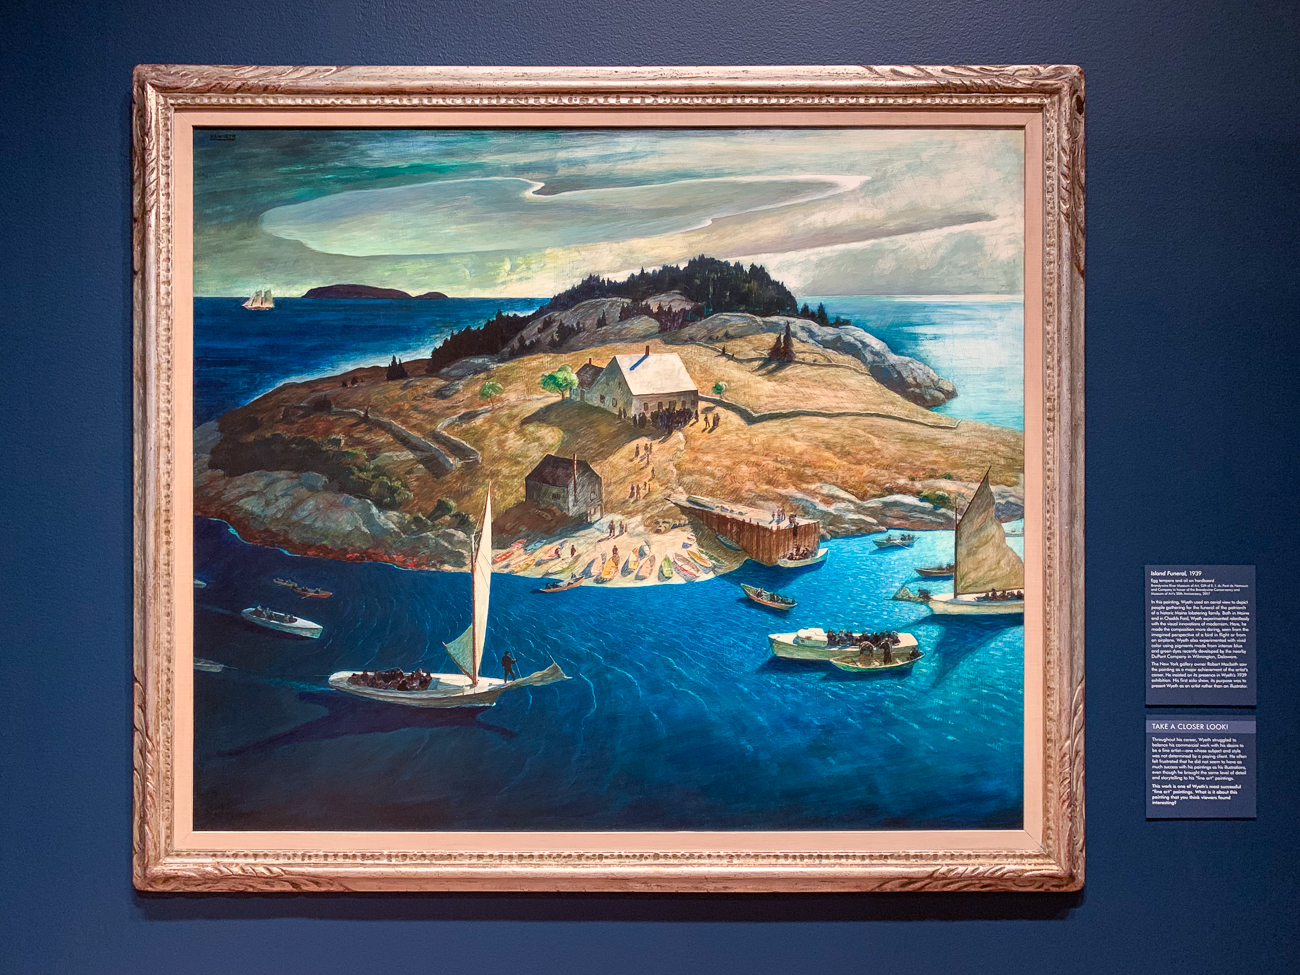 In Funeral for a Fisherman (1939), Wyeth worked with a chemist to produce a bright blue-green hue that intensifies the drama and surrealism of the scene he painted. He used this special hue in multiple pieces, several of which can be seen in the gallery.{ }/ Image: Phil Armstrong, Cincinnati Refined // Published: 2.9.20